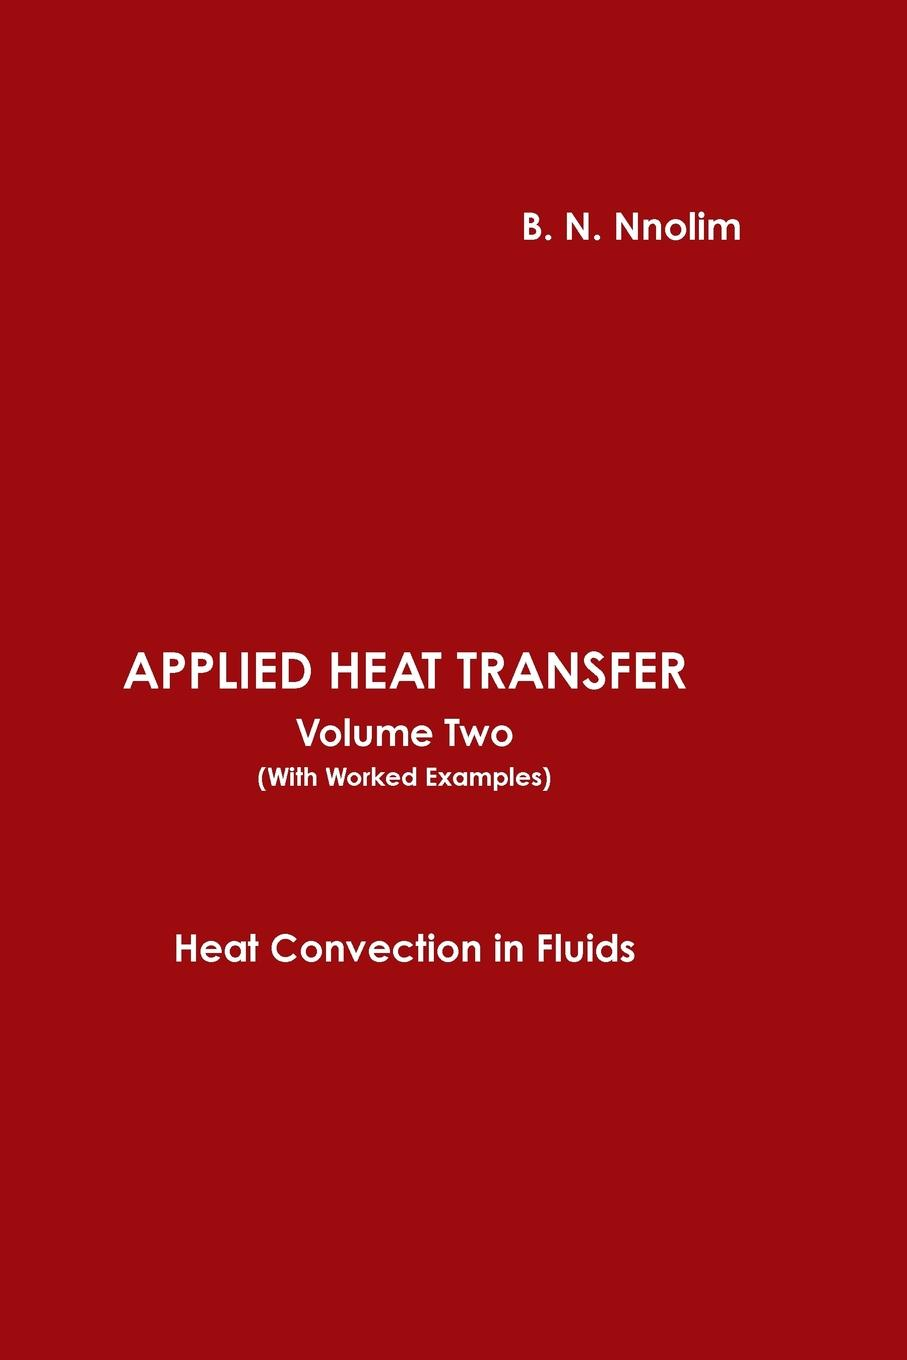 B. N. Nnolim APPLIED HEAT TRANSFER Volume Two (With Worked Examples)) louis theodore heat transfer applications for the practicing engineer